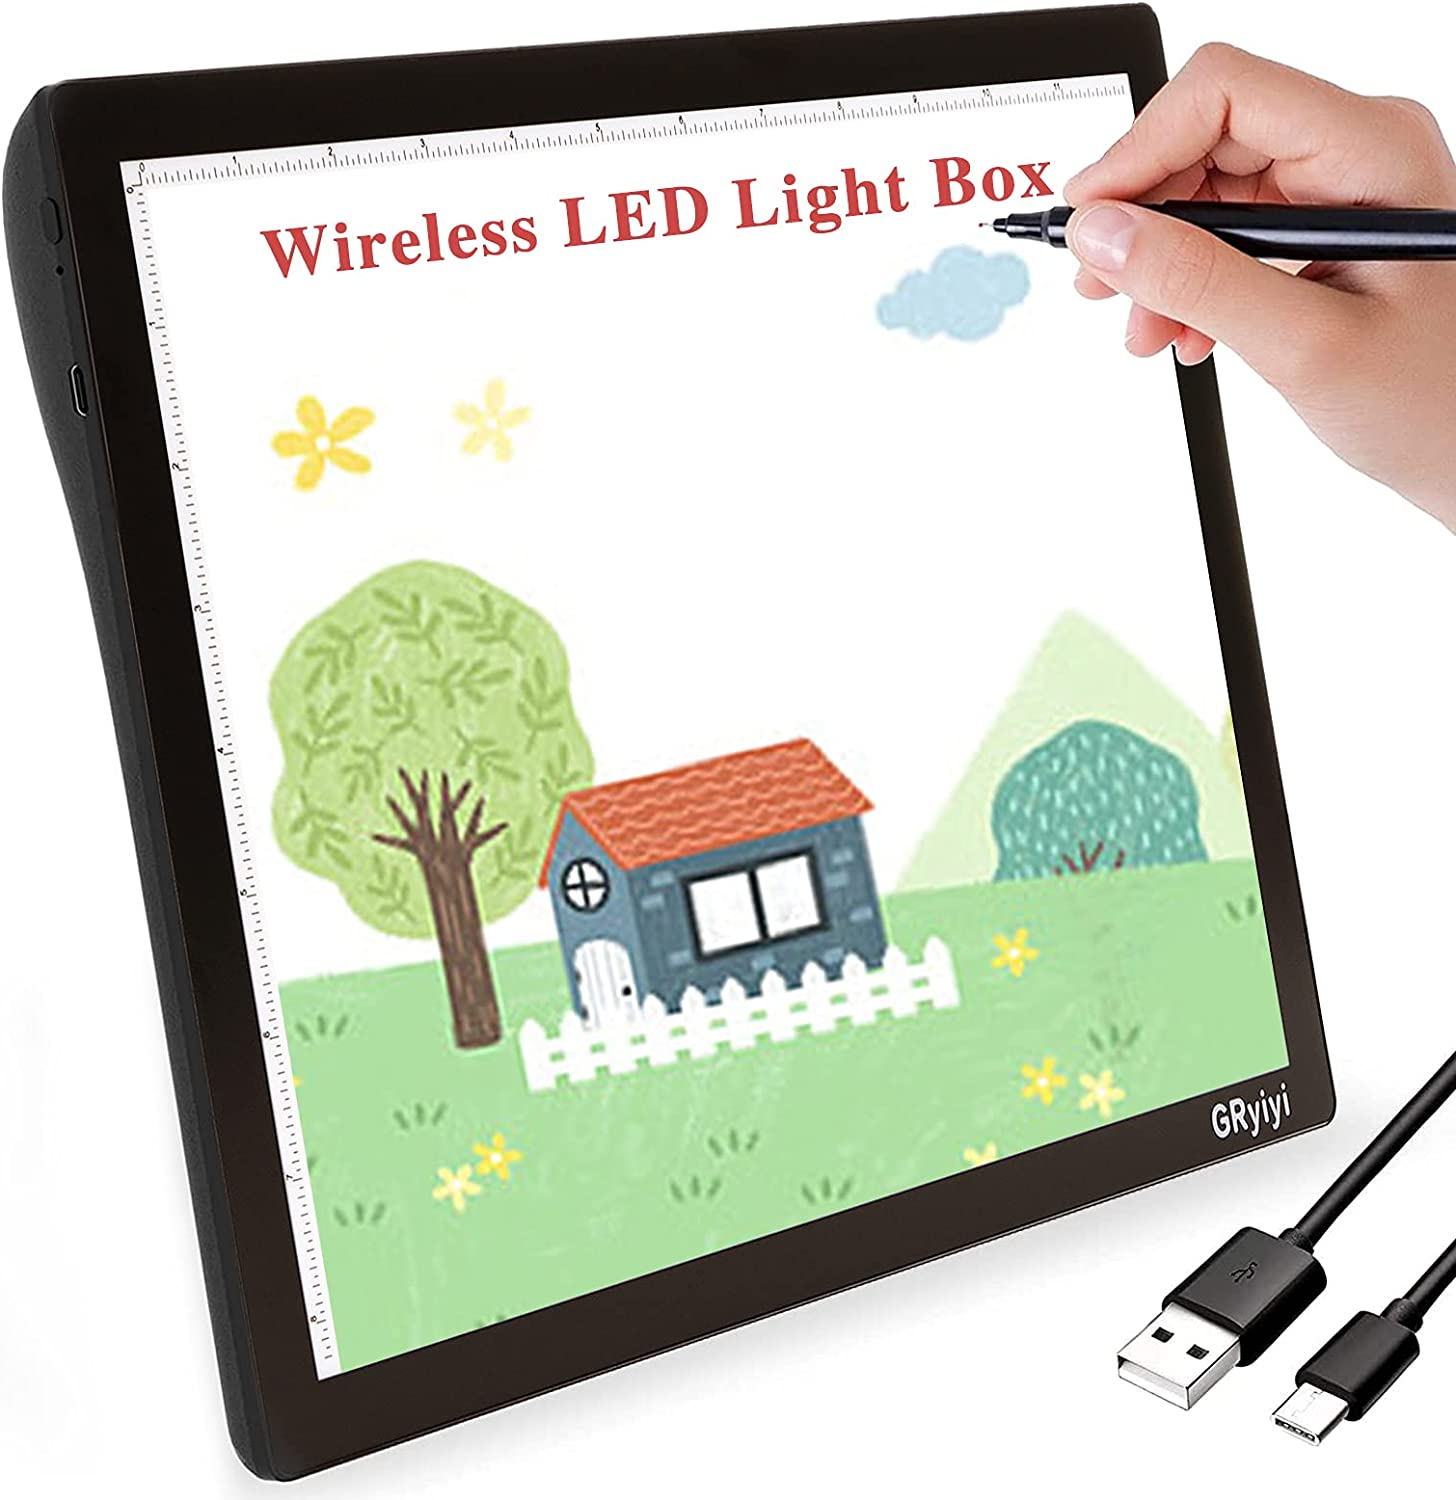 Max 44% OFF Light Box for Tracing Rechargeable A4 Gryiyi online shopping